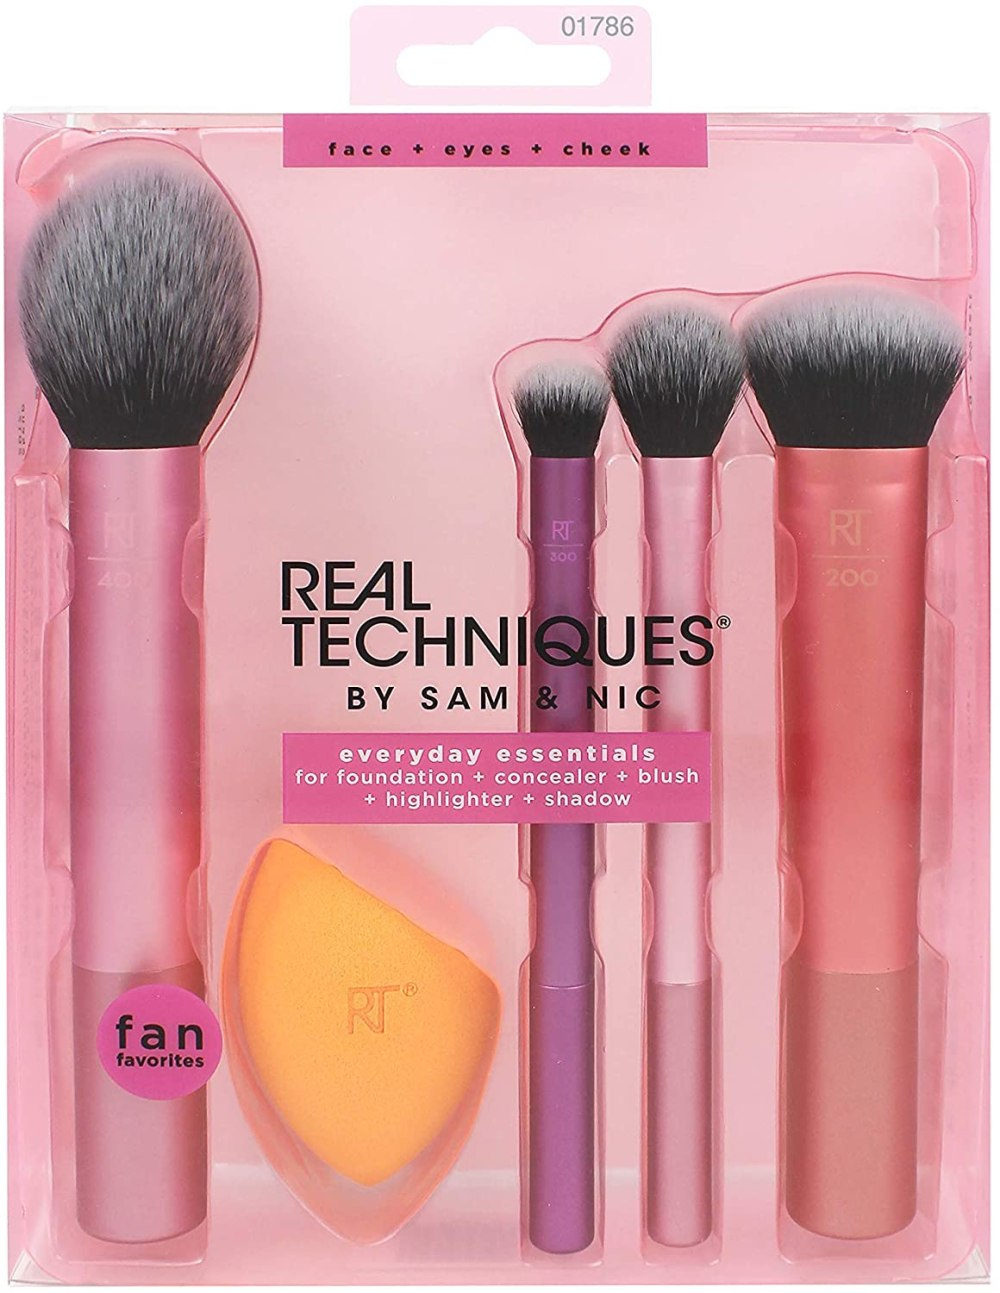 real techniques brushes review.jpg